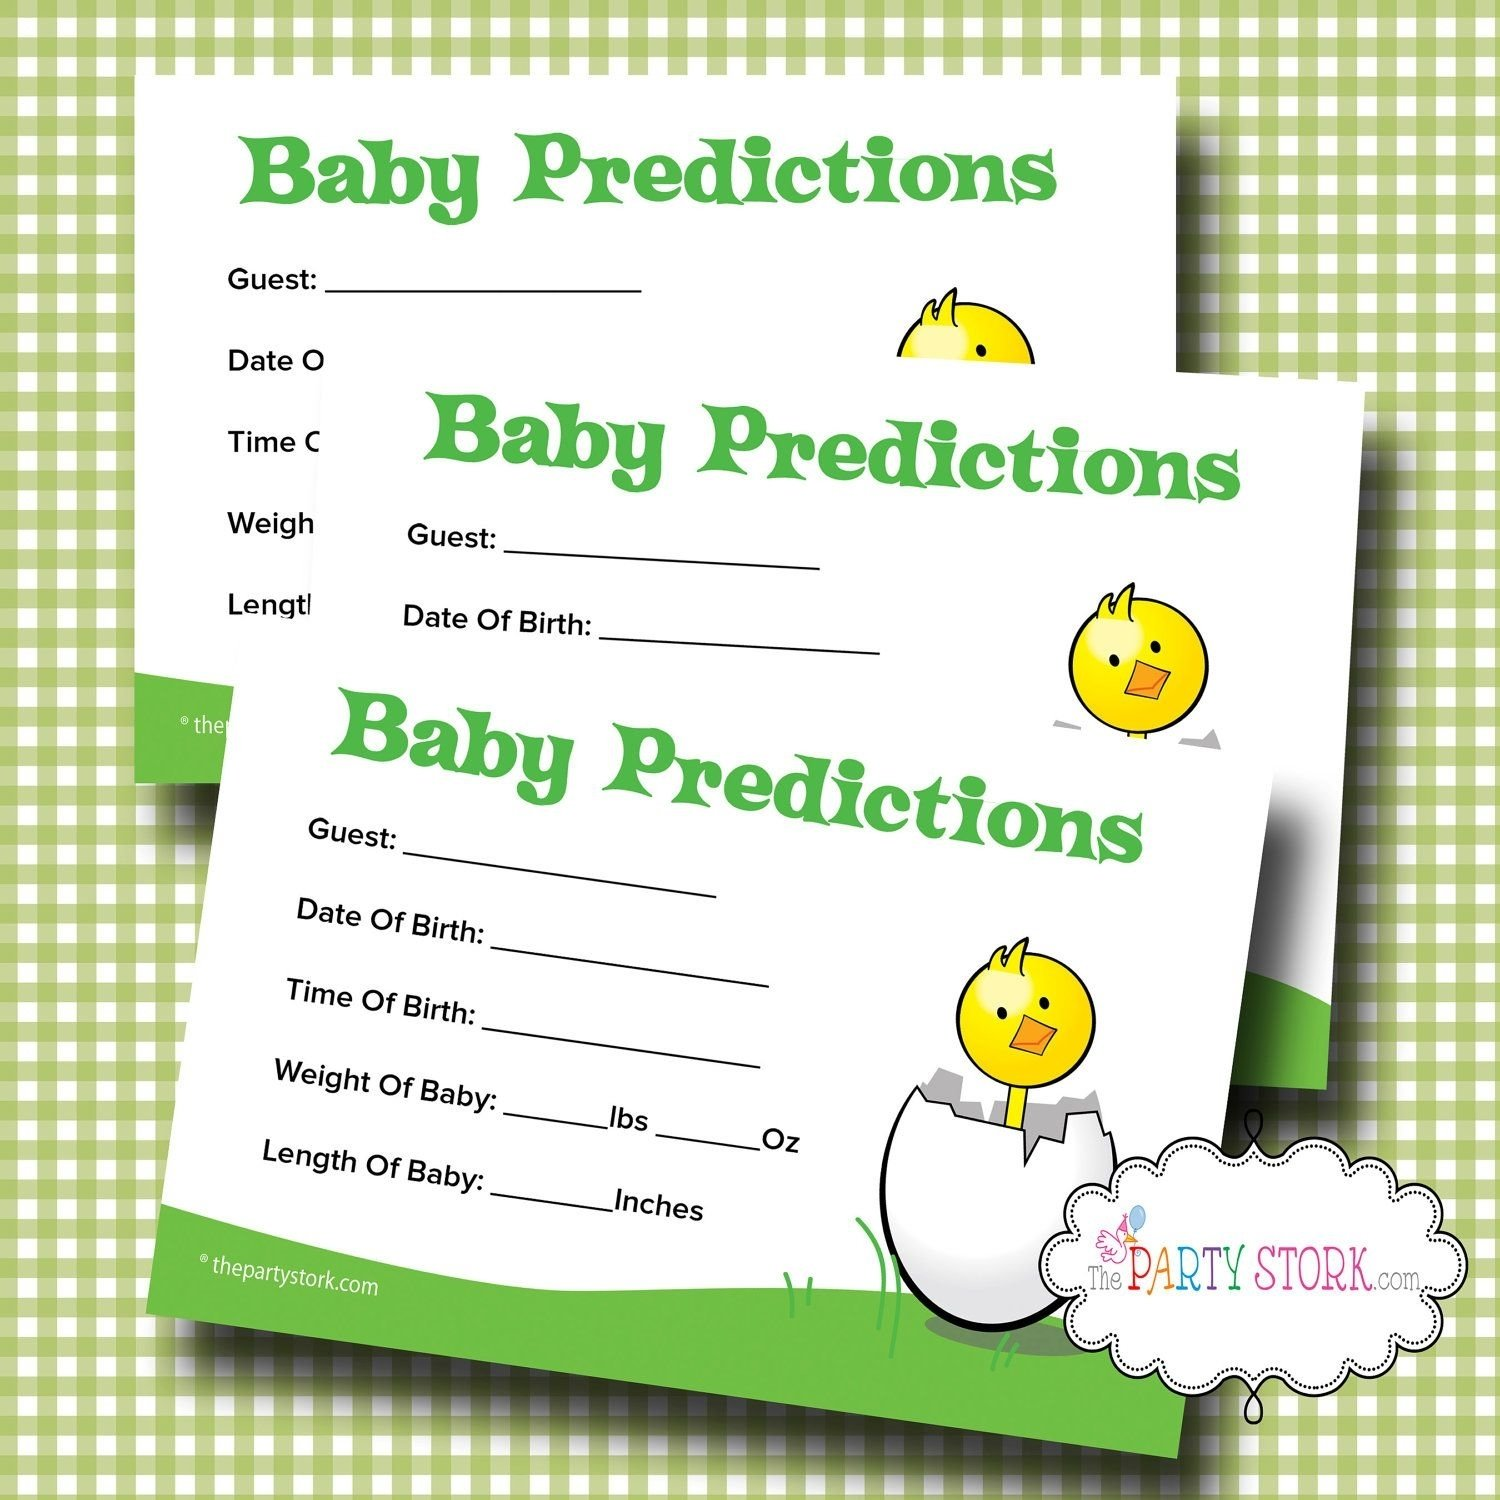 10 Perfect Baby Shower Game Ideas For A Girl printable baby shower prediction game baby shower predictions card 7 2021